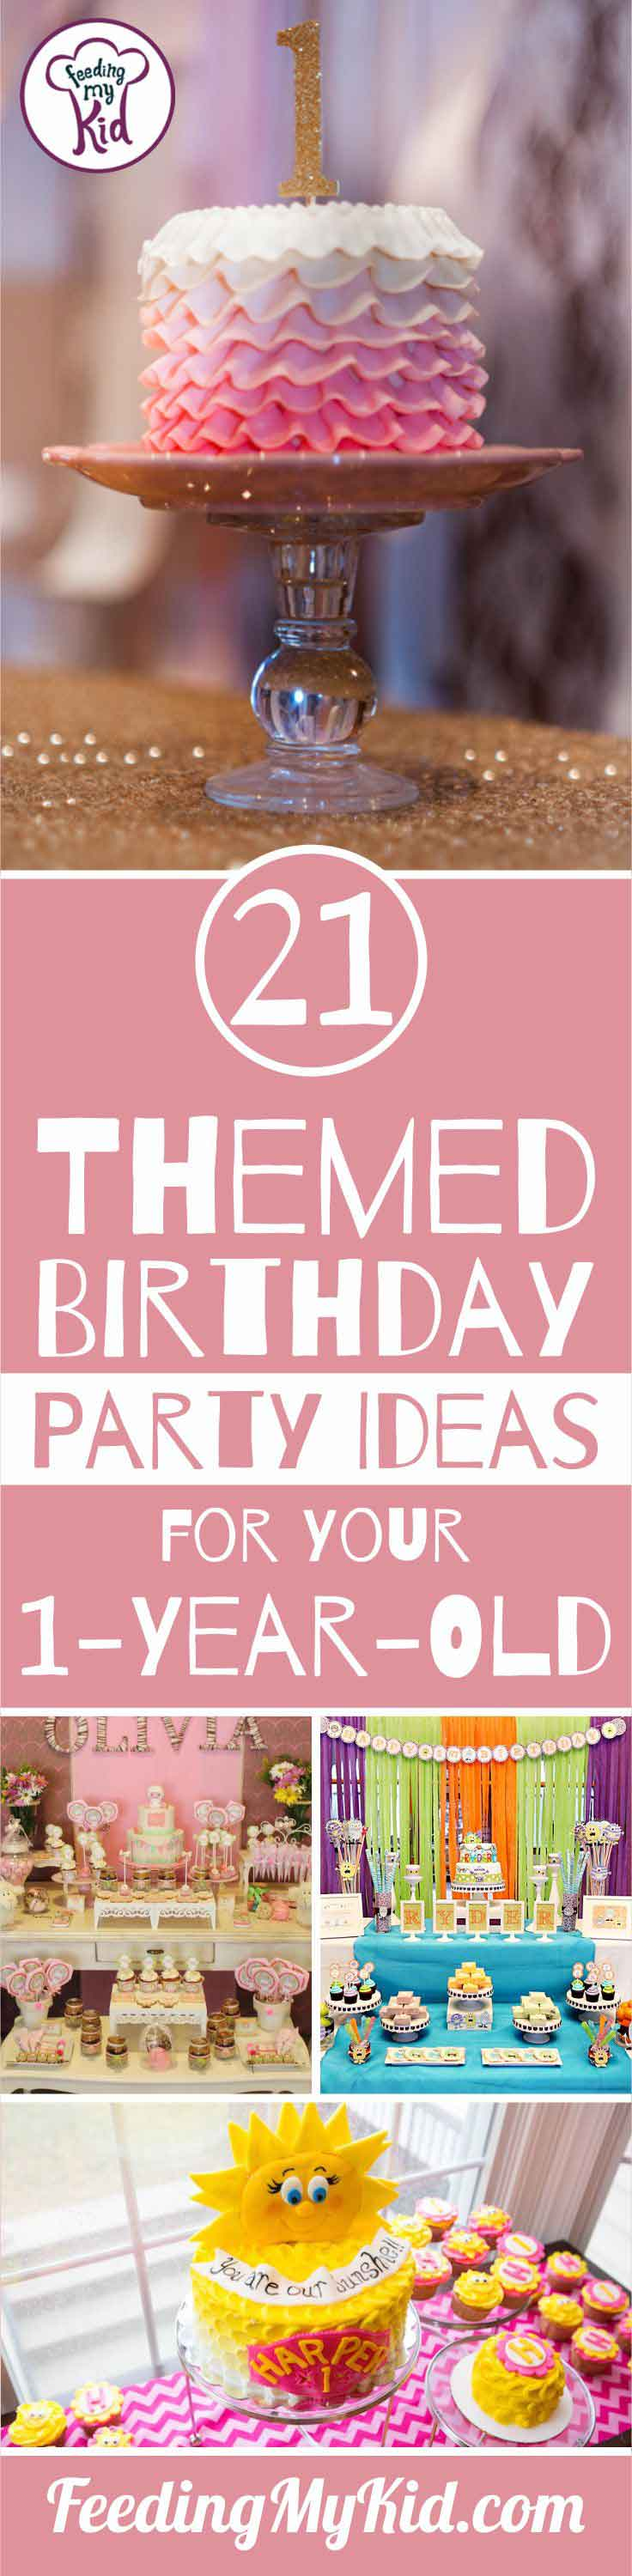 birthday party themes for 1 year old ; birthday-party-themes